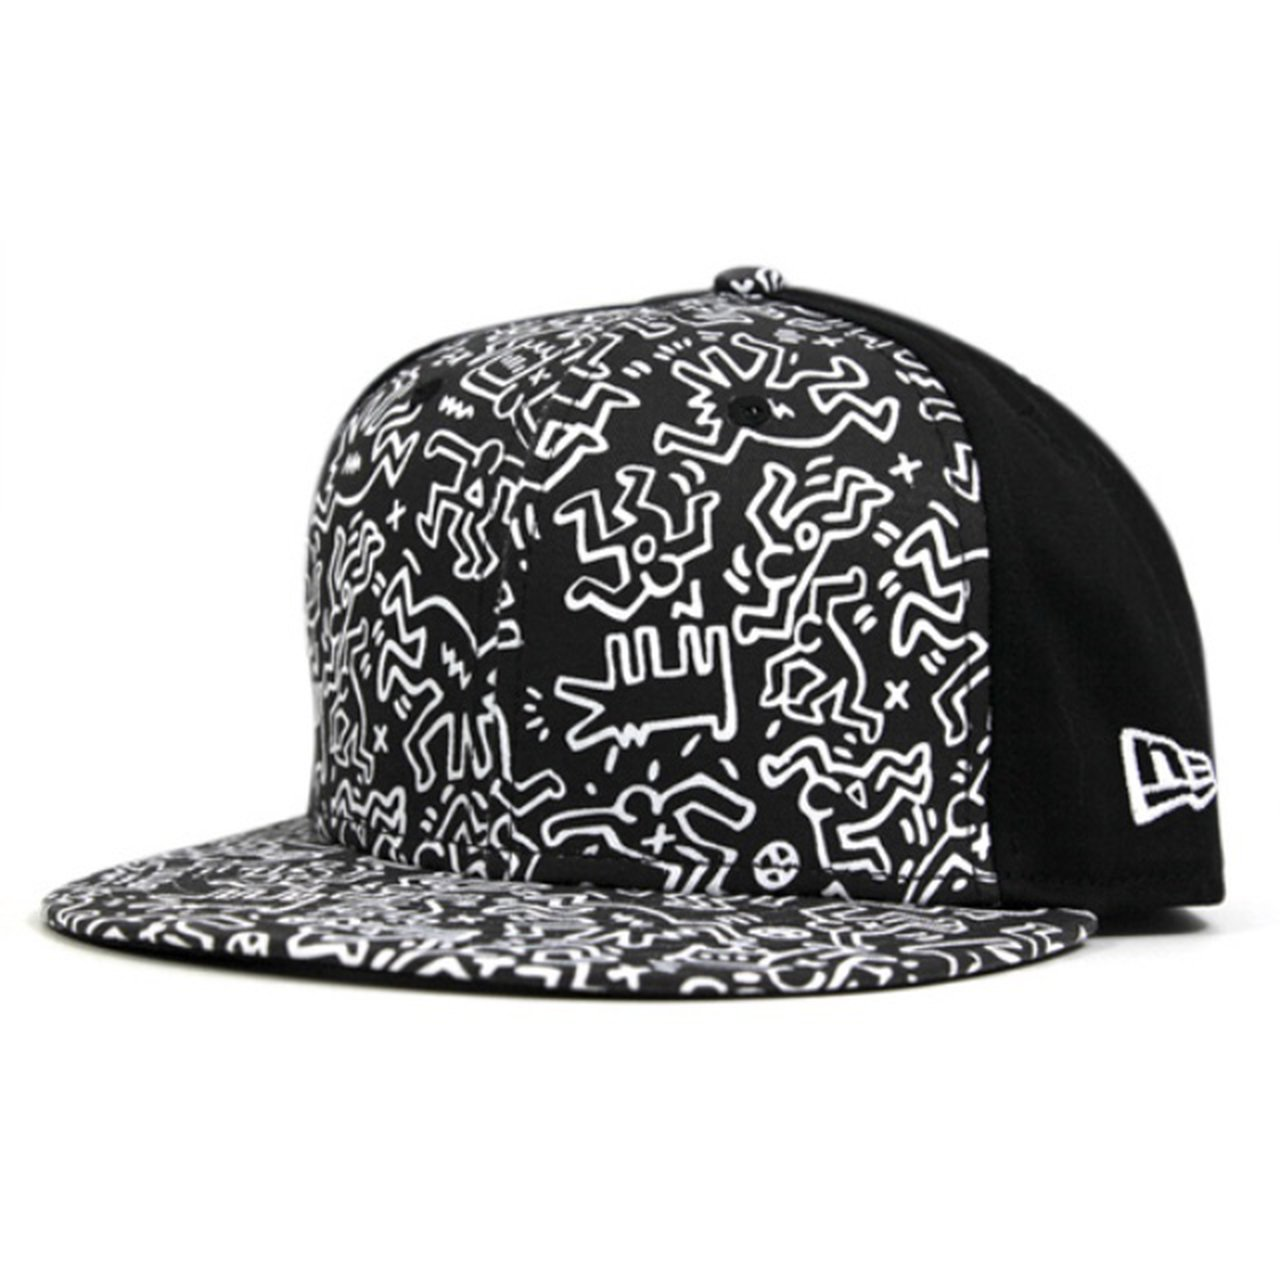 Rare✨Authentic New Era  KEITH HARING 9FIFTY 950 Limited run - Depop 0a4ff85e69c